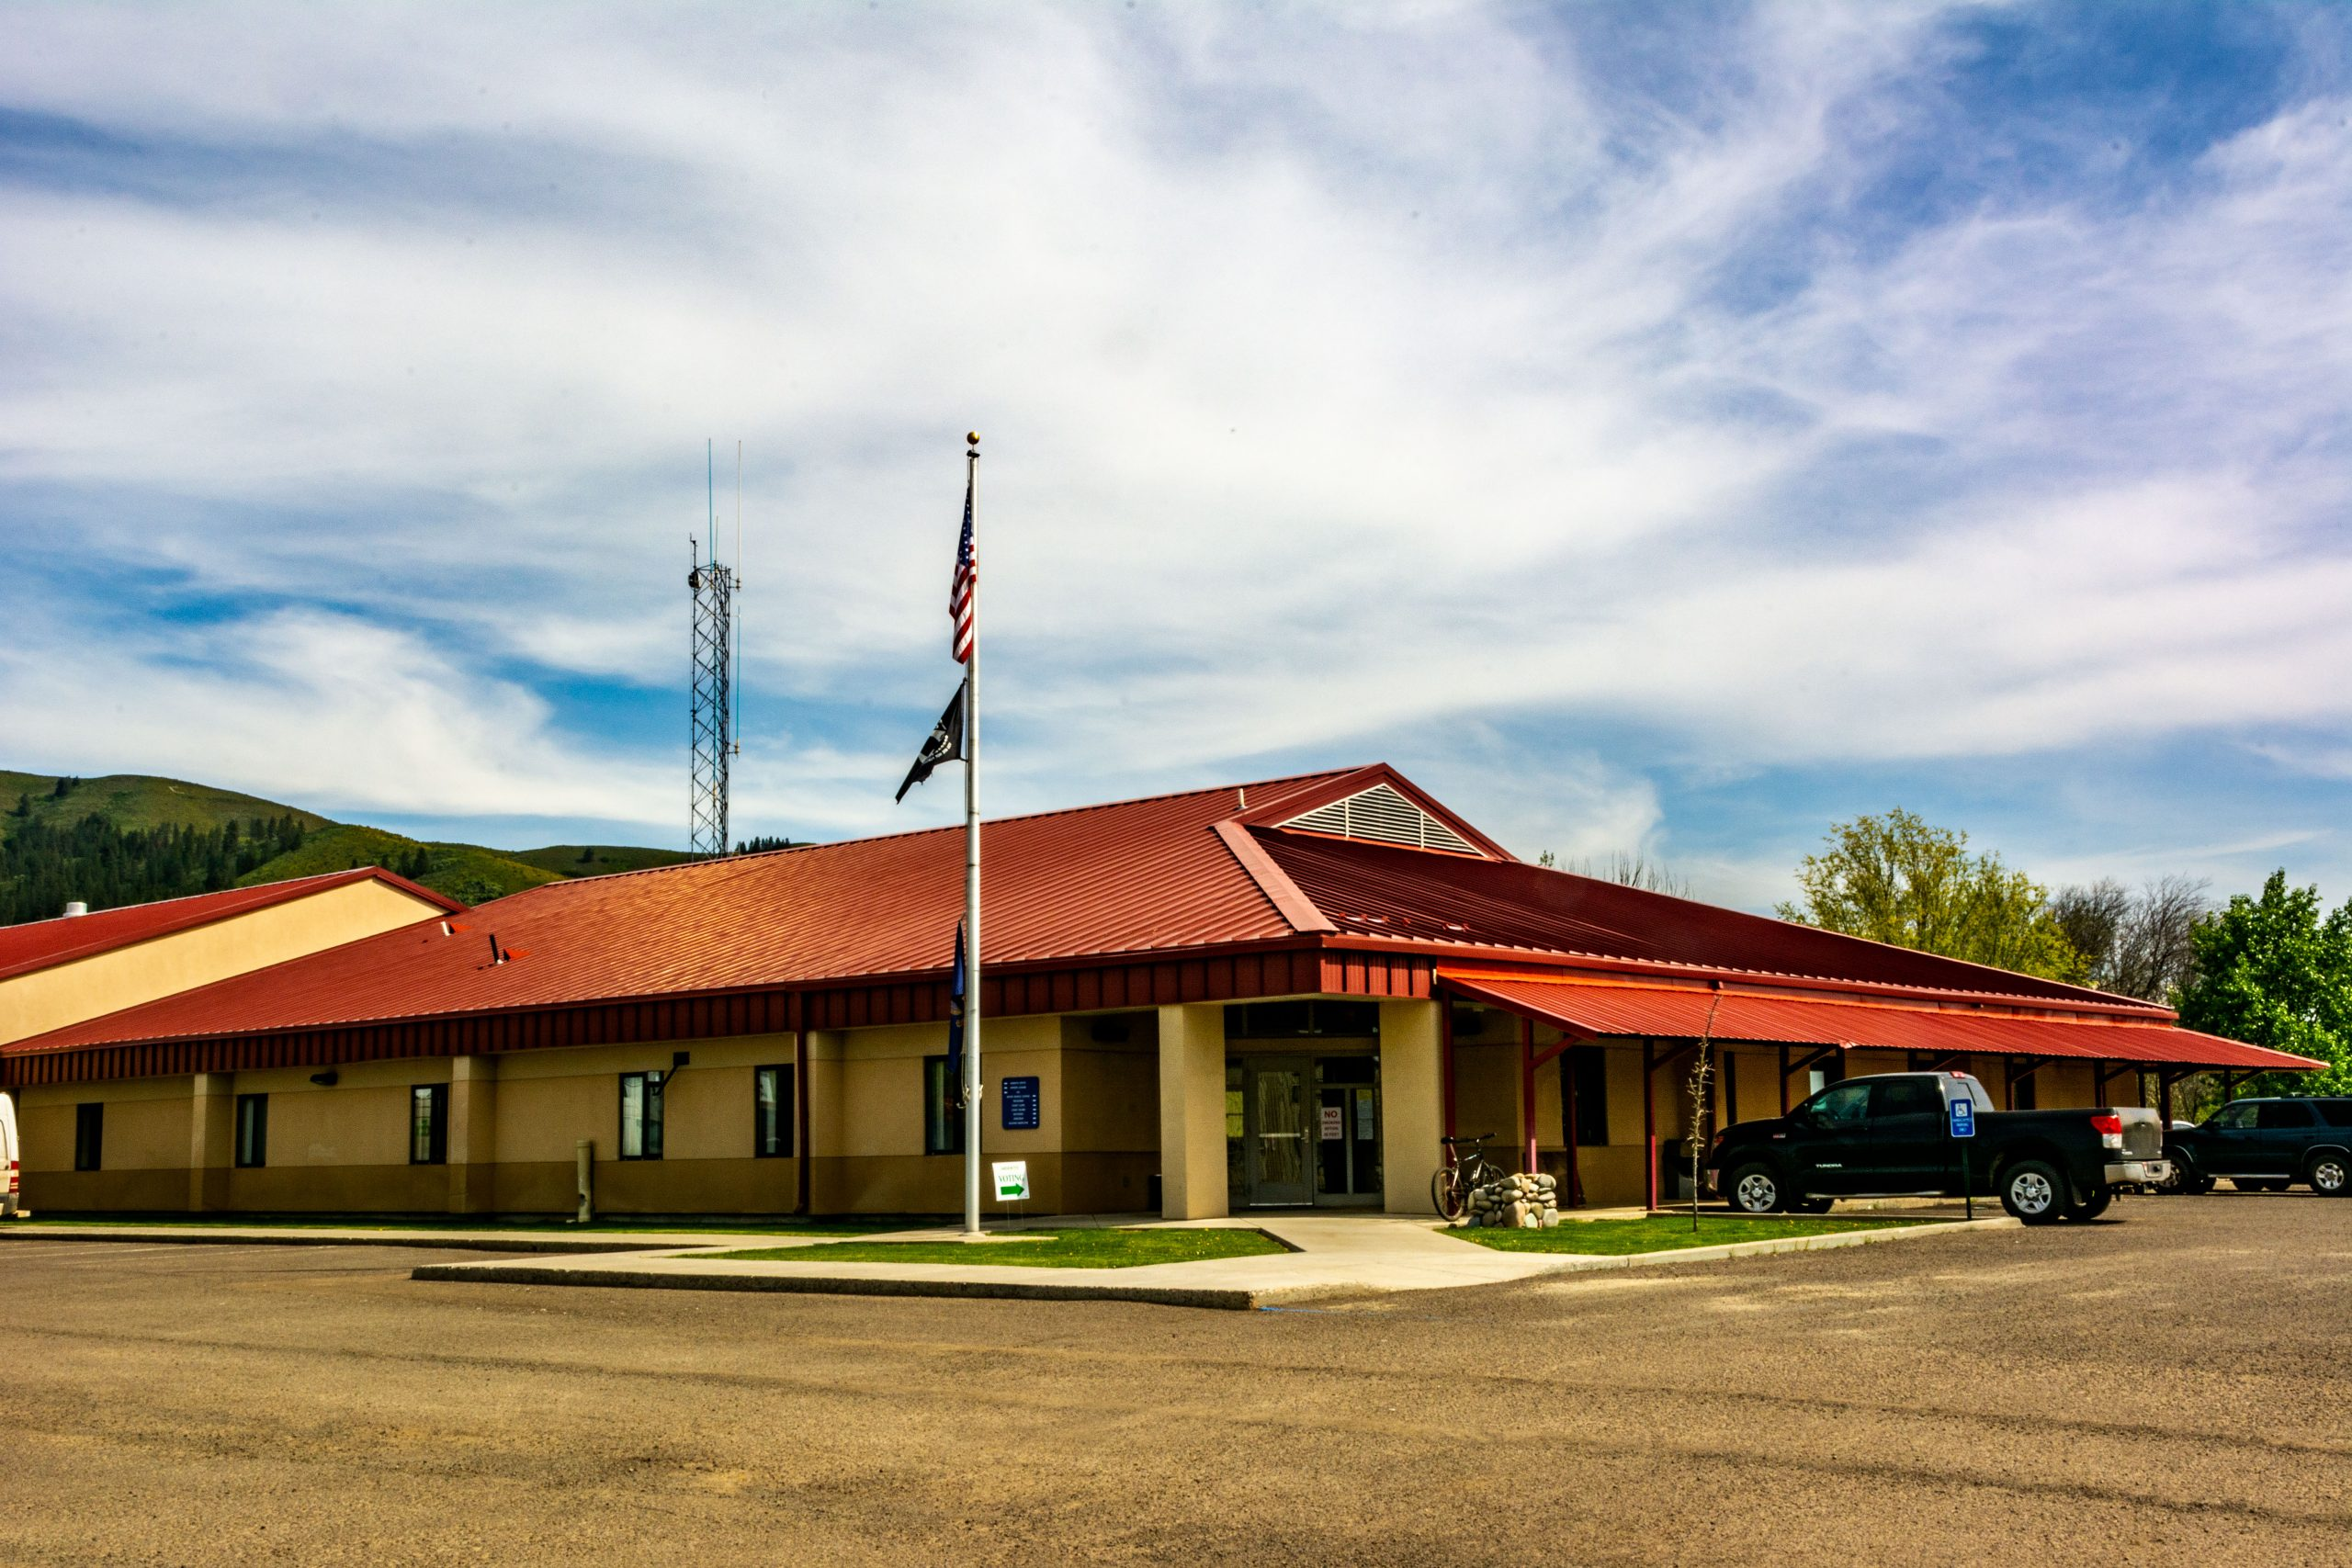 The Adams County, Idaho, Court House